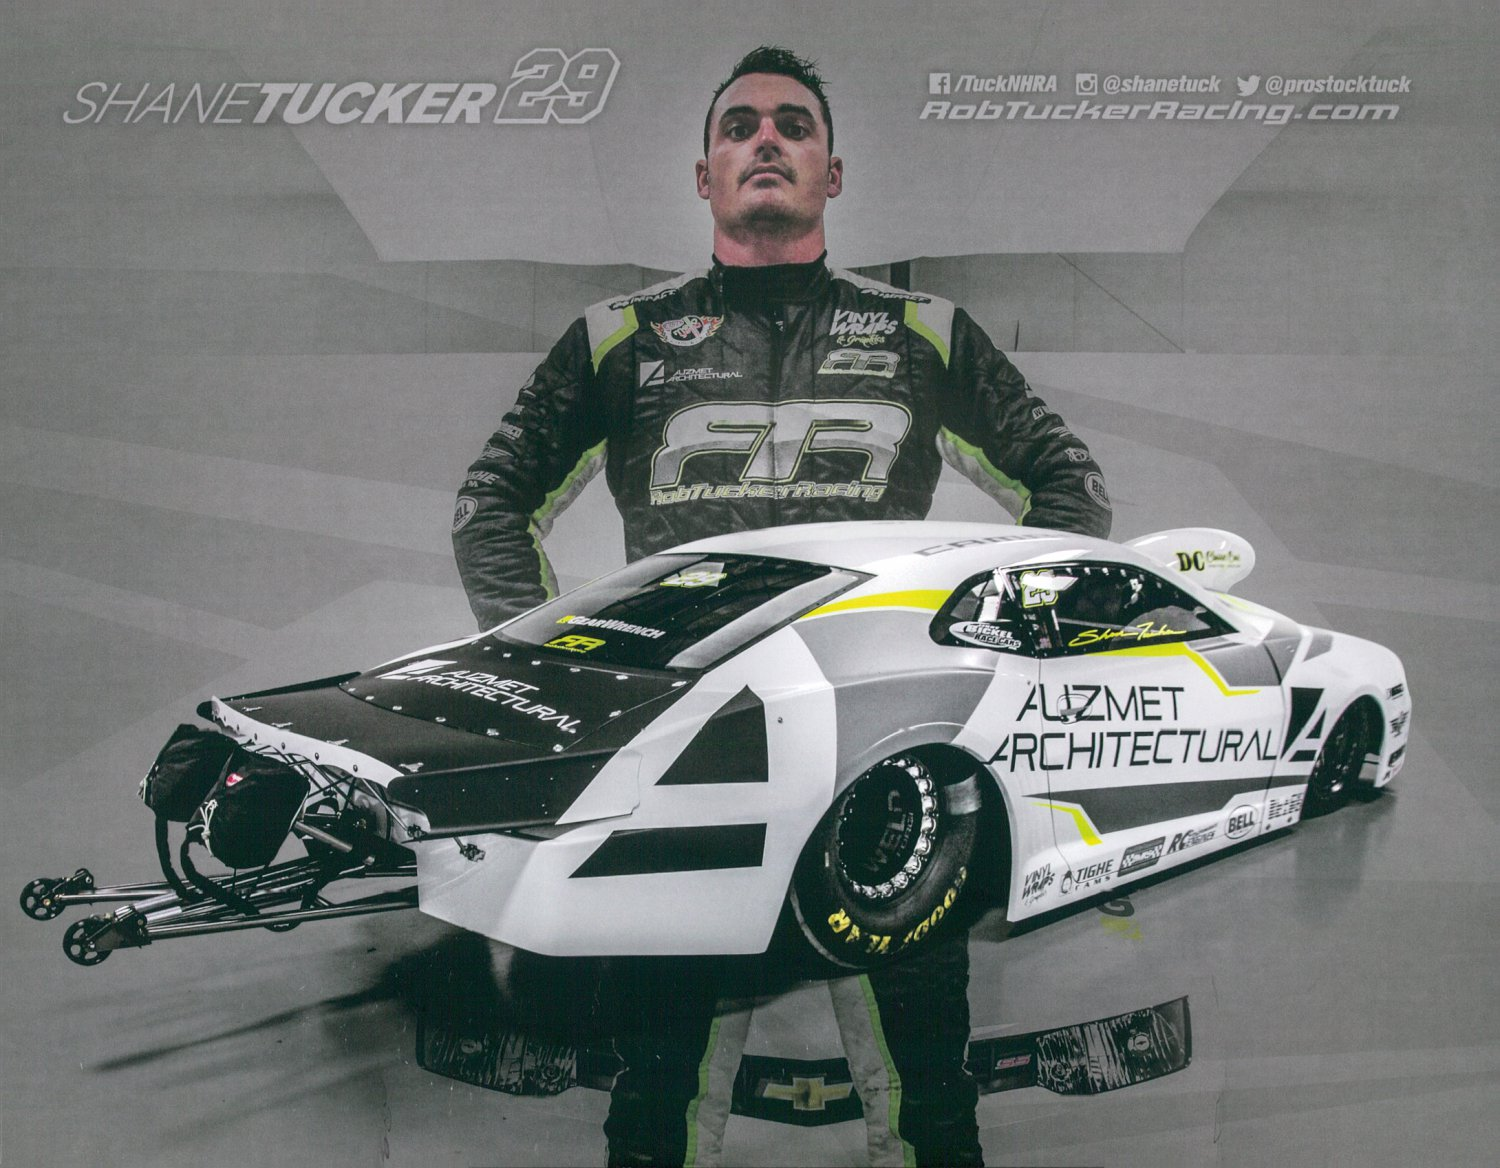 2014 NHRA PS Handout Shane Tucker (version #3)